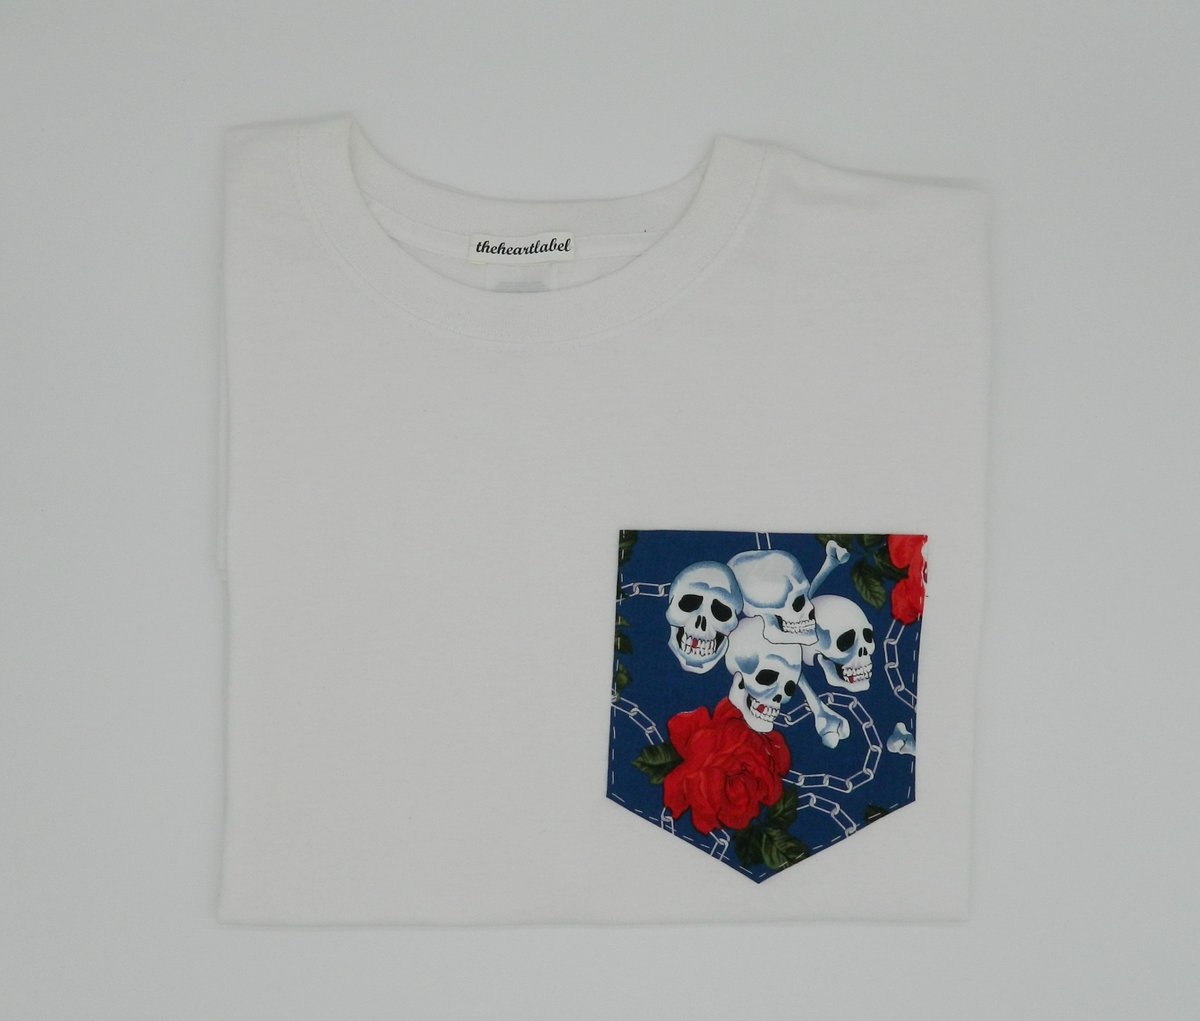 Excited to share the latest addition to my #etsy shop: Skulls and Roses Pattern Pocket Tee, White Pocket T-Shirt, Men's T- Shirt, Pocket tee, Unisex, Menswear, UK https://t.co/s8E63sF6XZ #streetwear #shortsleeve #crew #pockettee #pockettshirt #menswear #menstshirt #uk https://t.co/49LyFruYlo